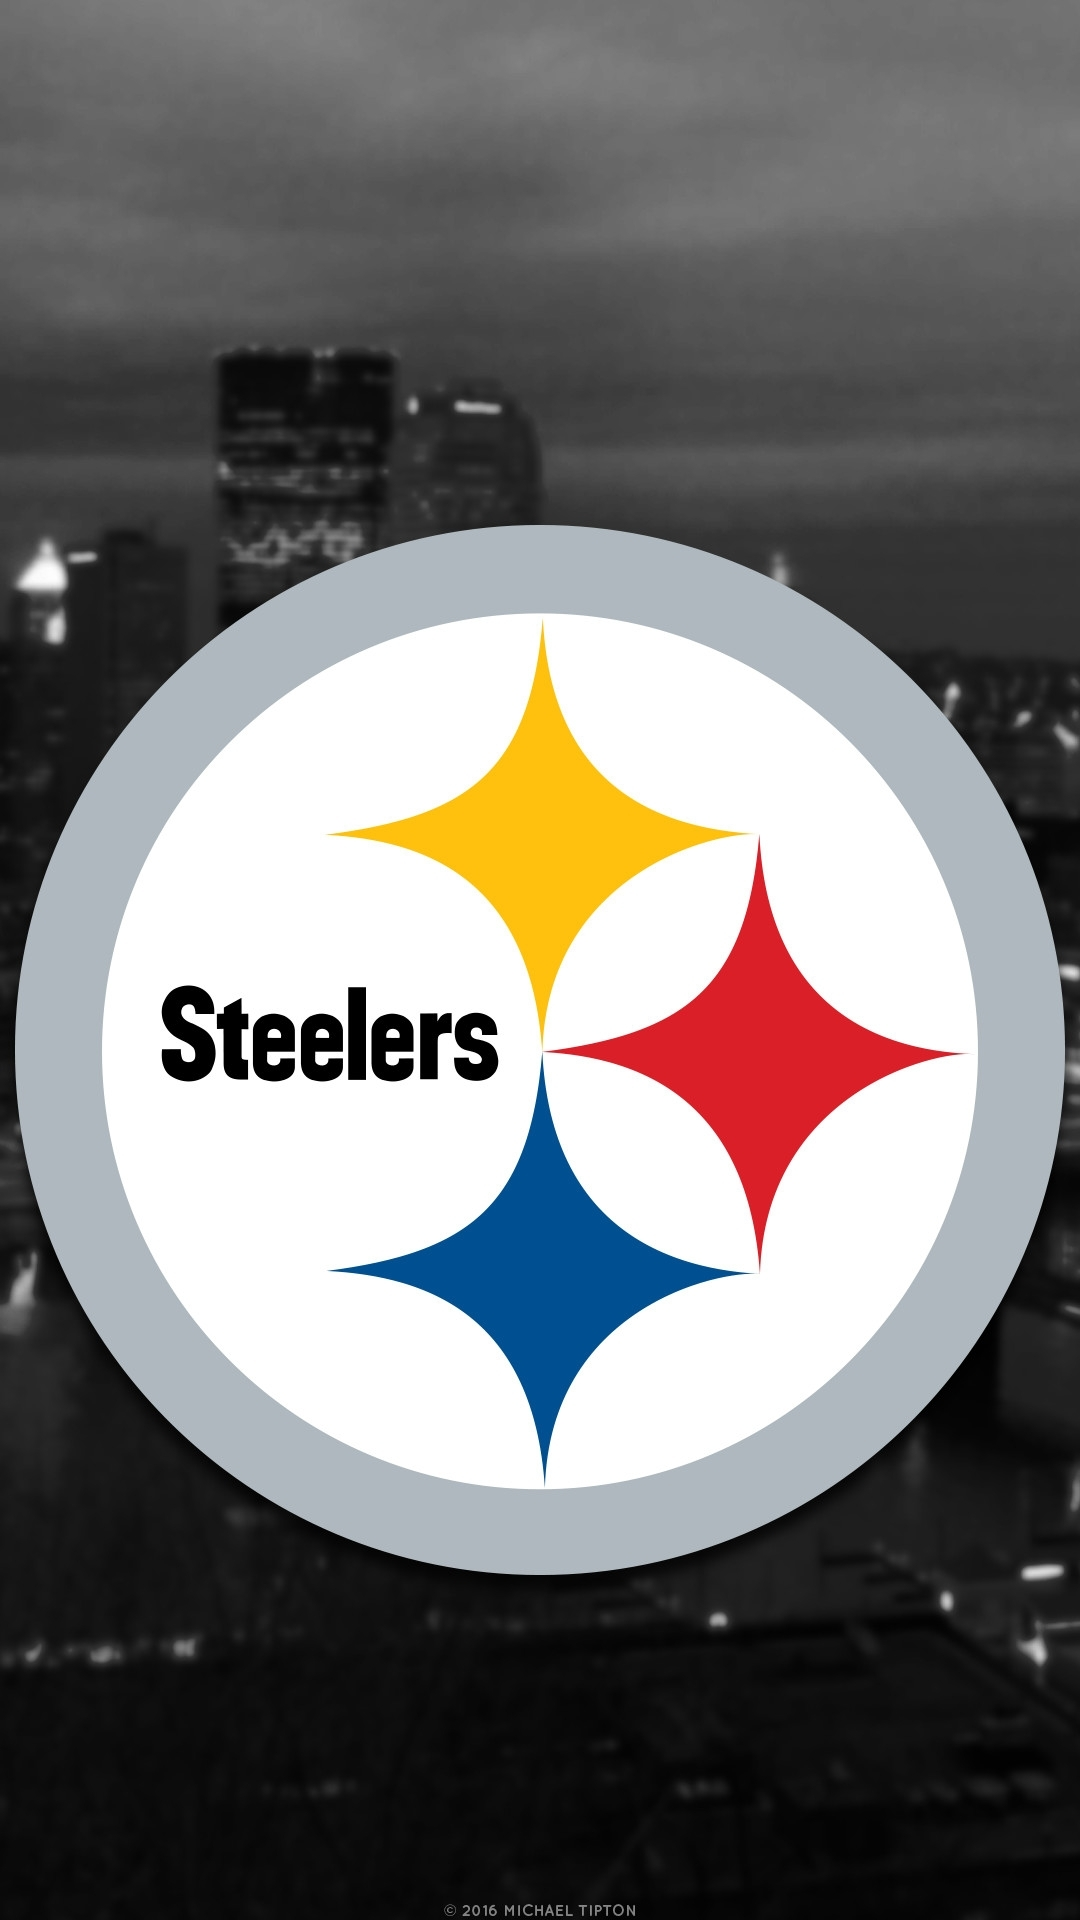 new steelers wallpapers for iphone (64+ images)